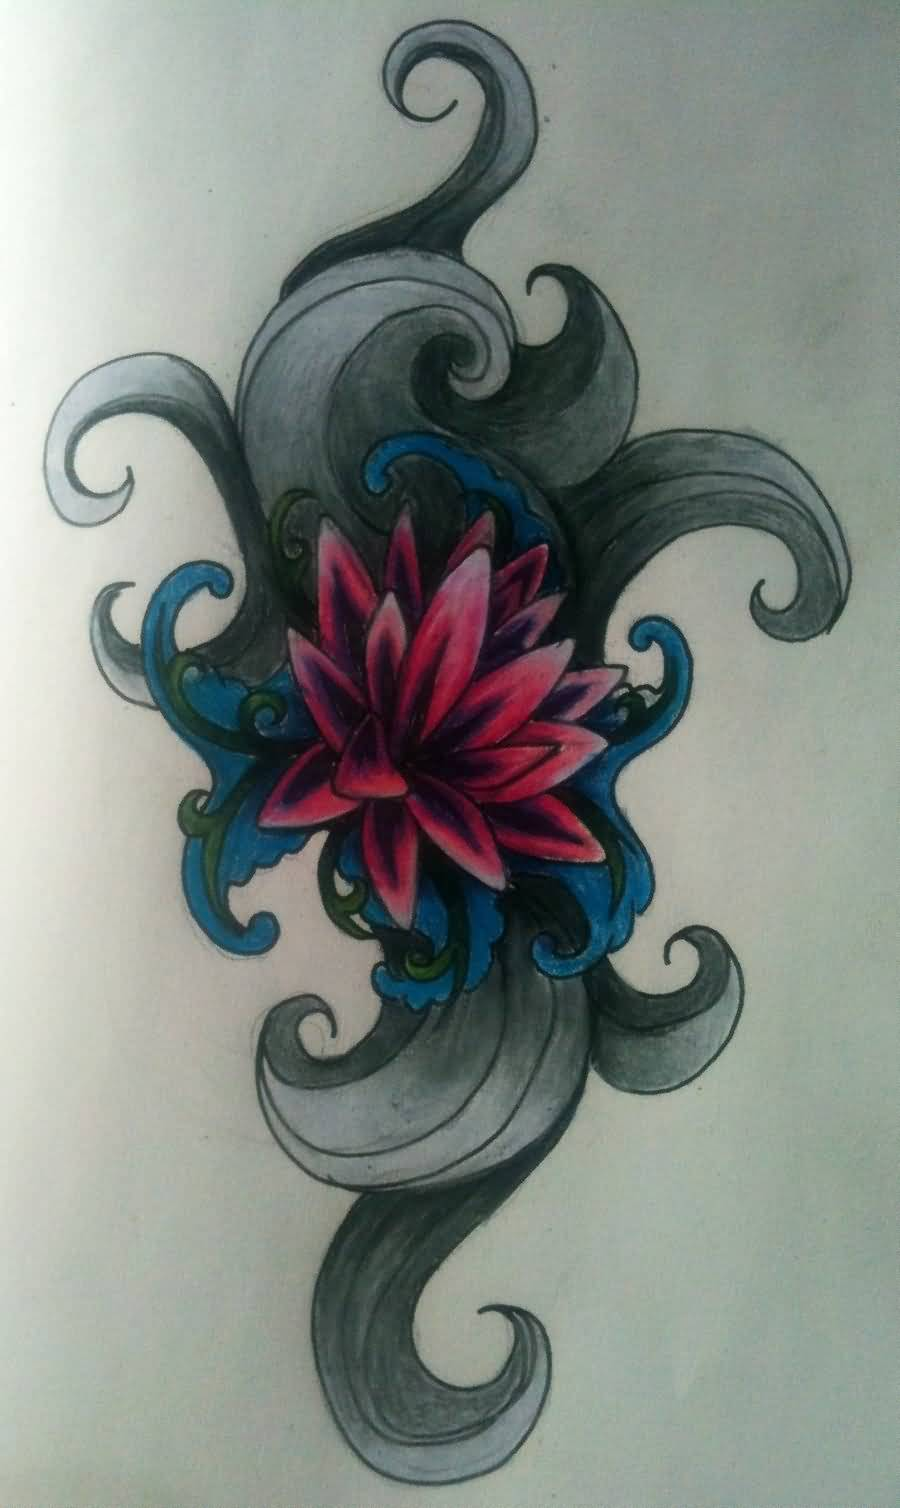 Lily tattoo ideas and lily tattoo designs page 8 lily flower tattoo design on paper izmirmasajfo